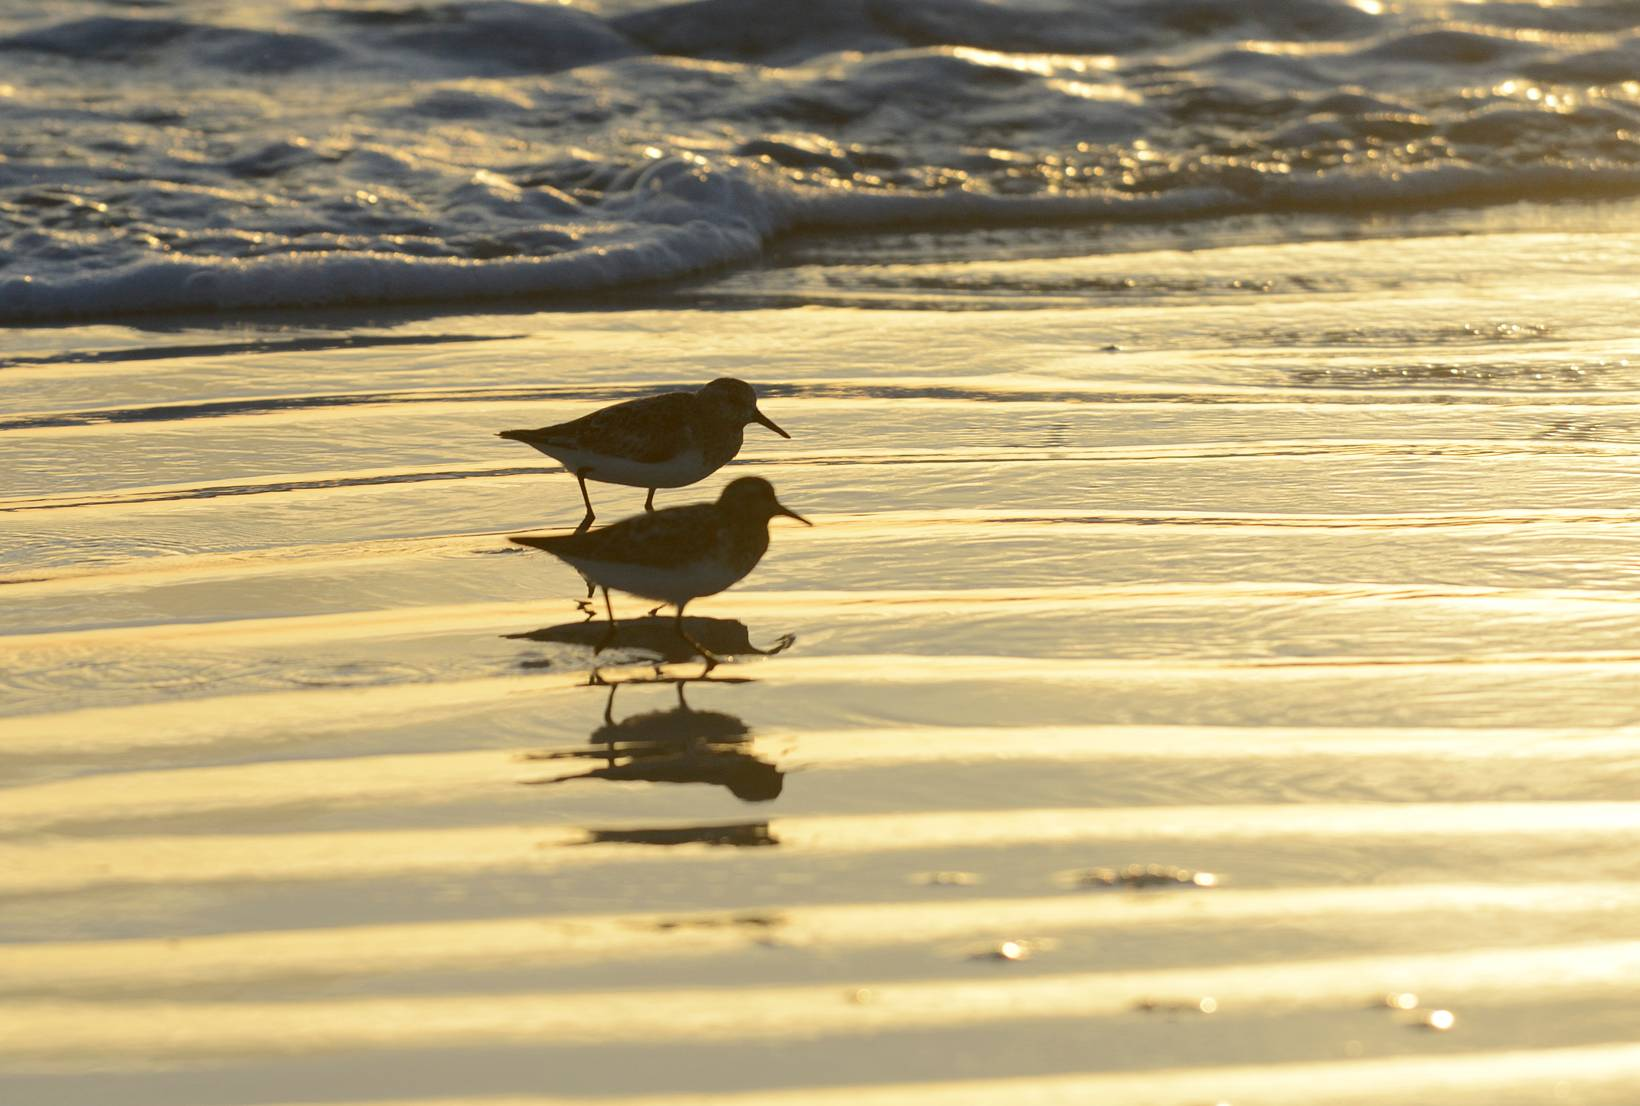 Limicoles - Sandpipers